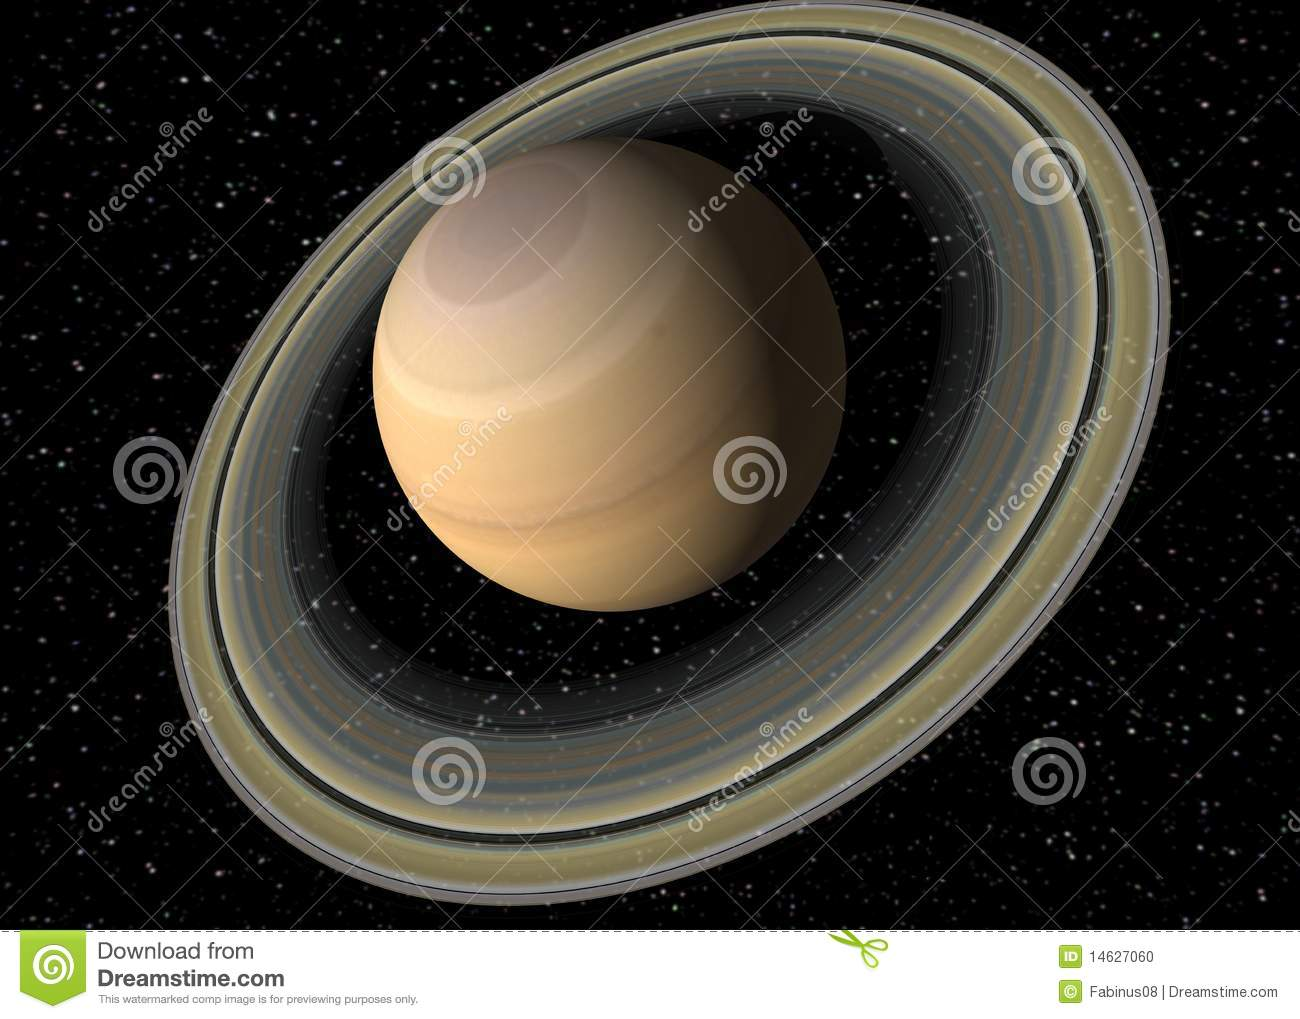 stock photo  planet saturn  image  14627060